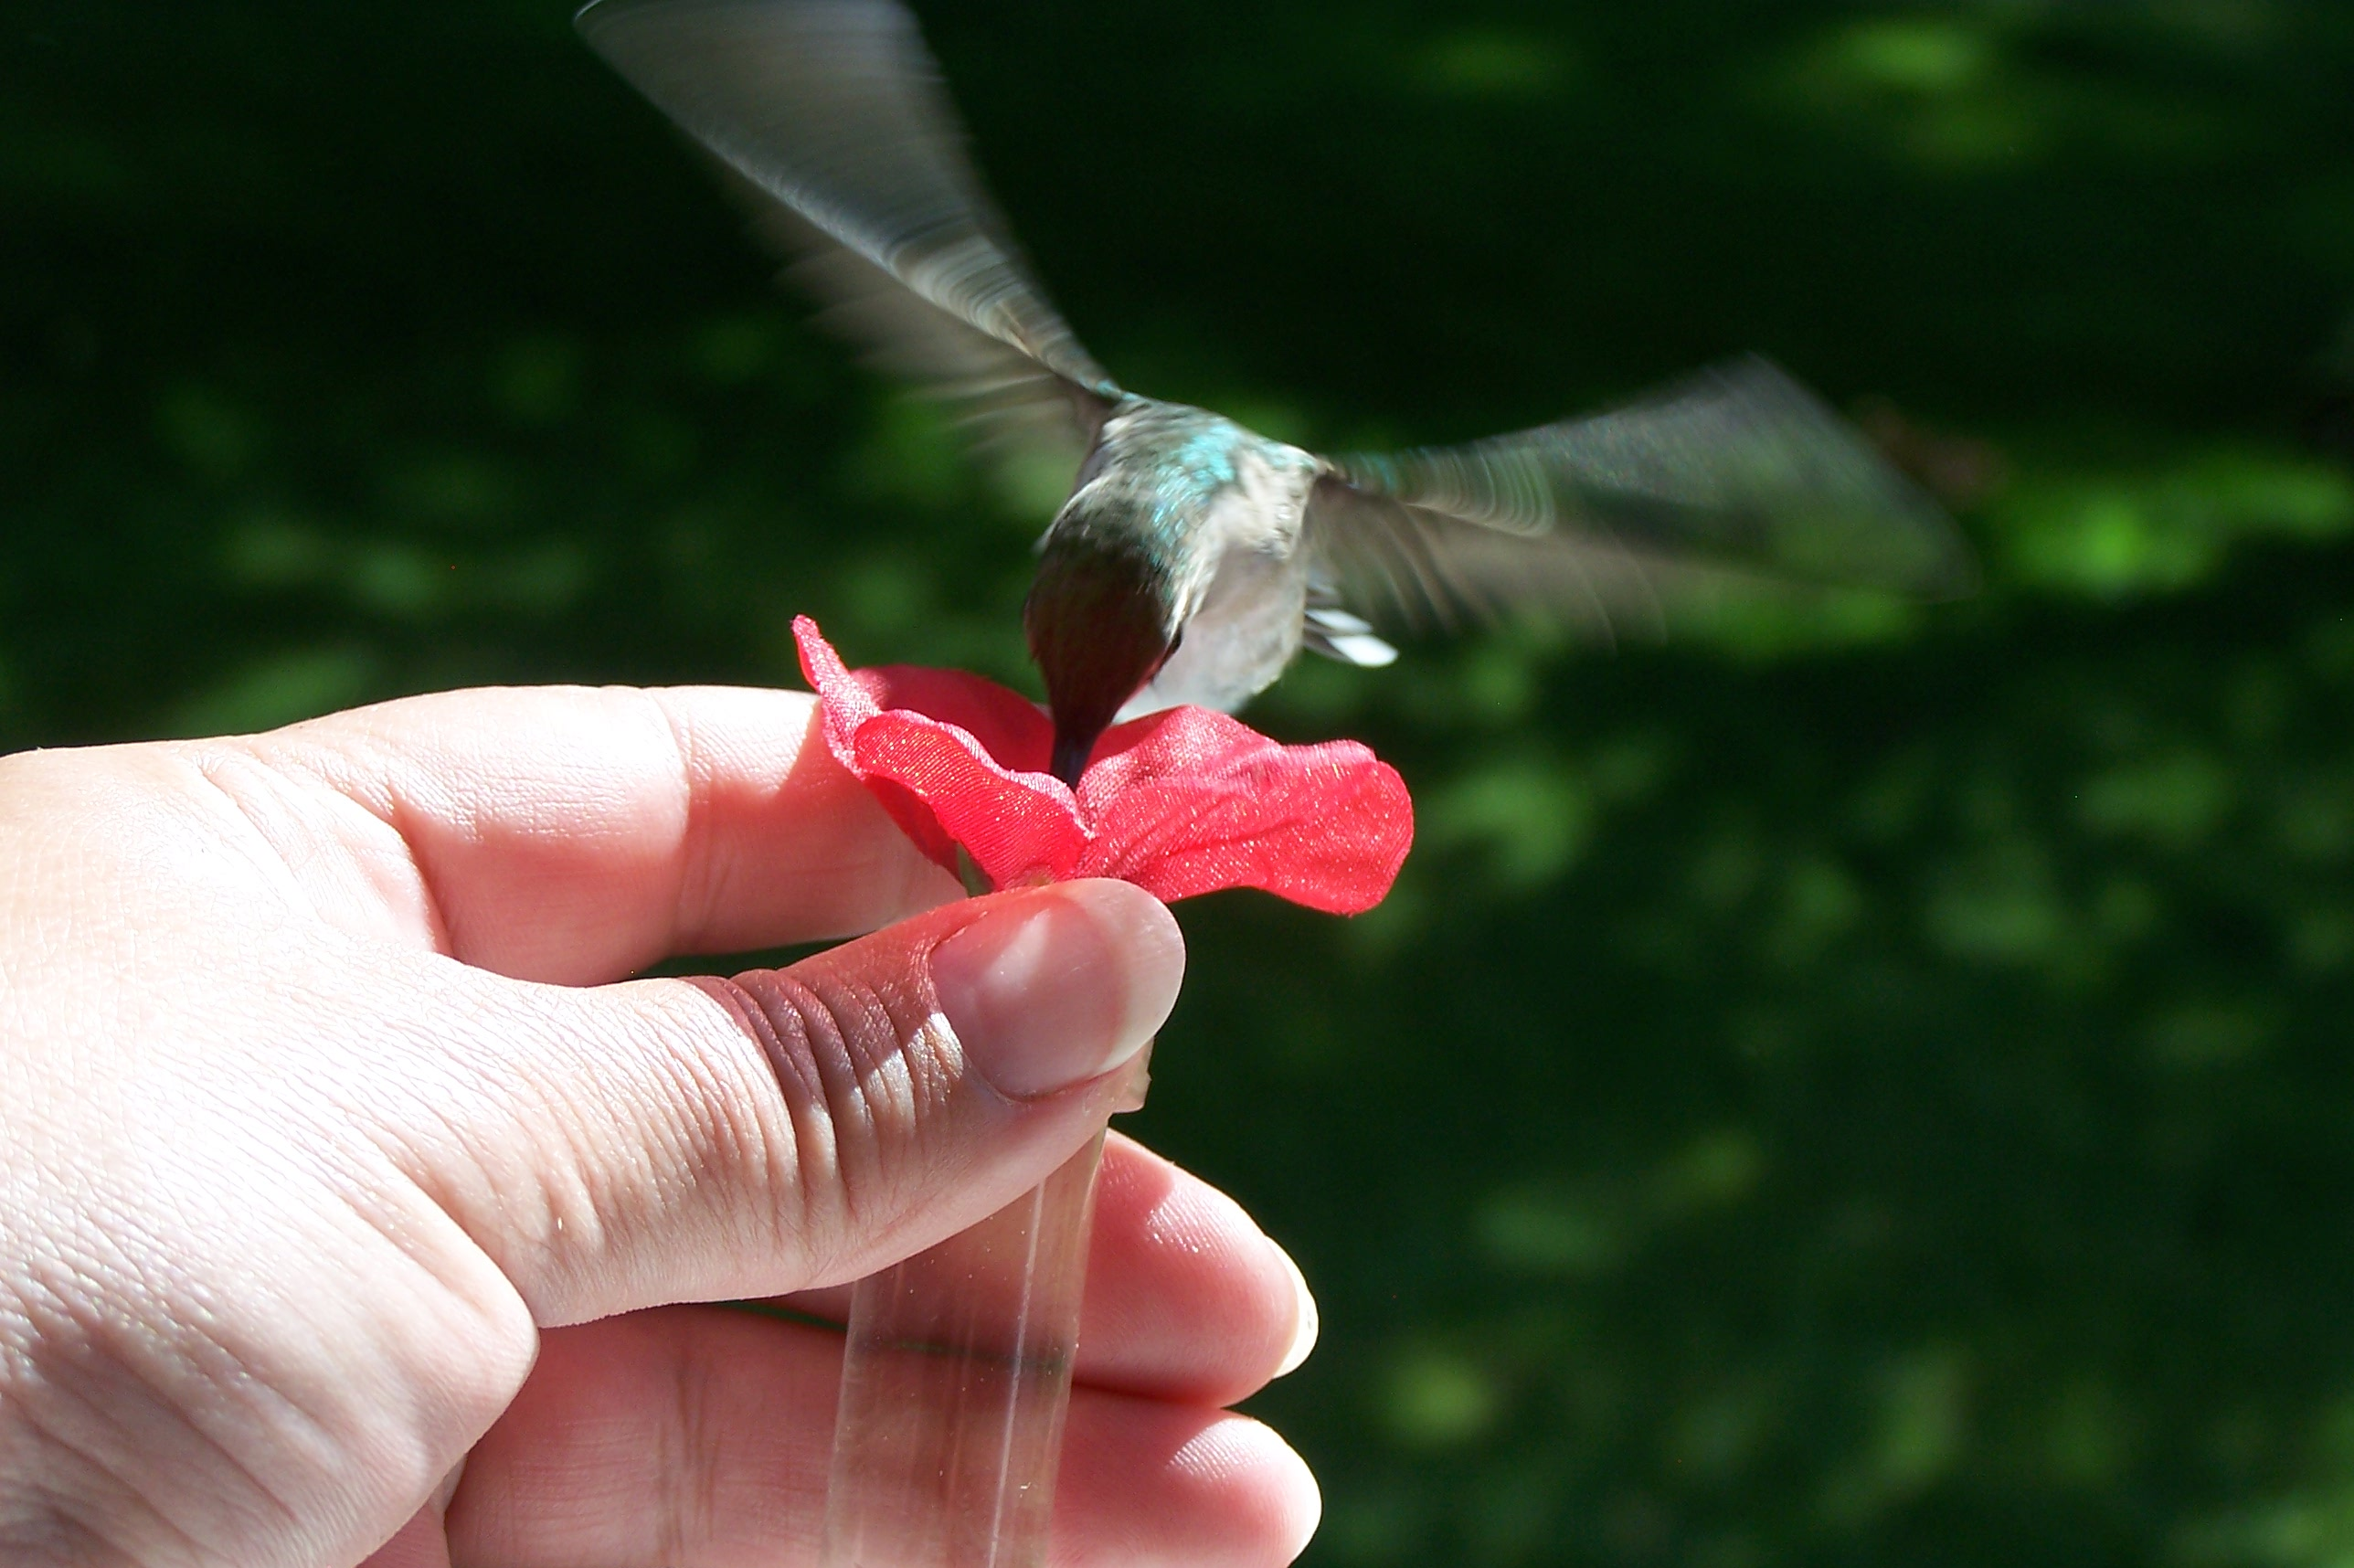 my support to sitting one commitment feeding include them pet contract hummingbirds hummingbird decanter in gallon feeder your